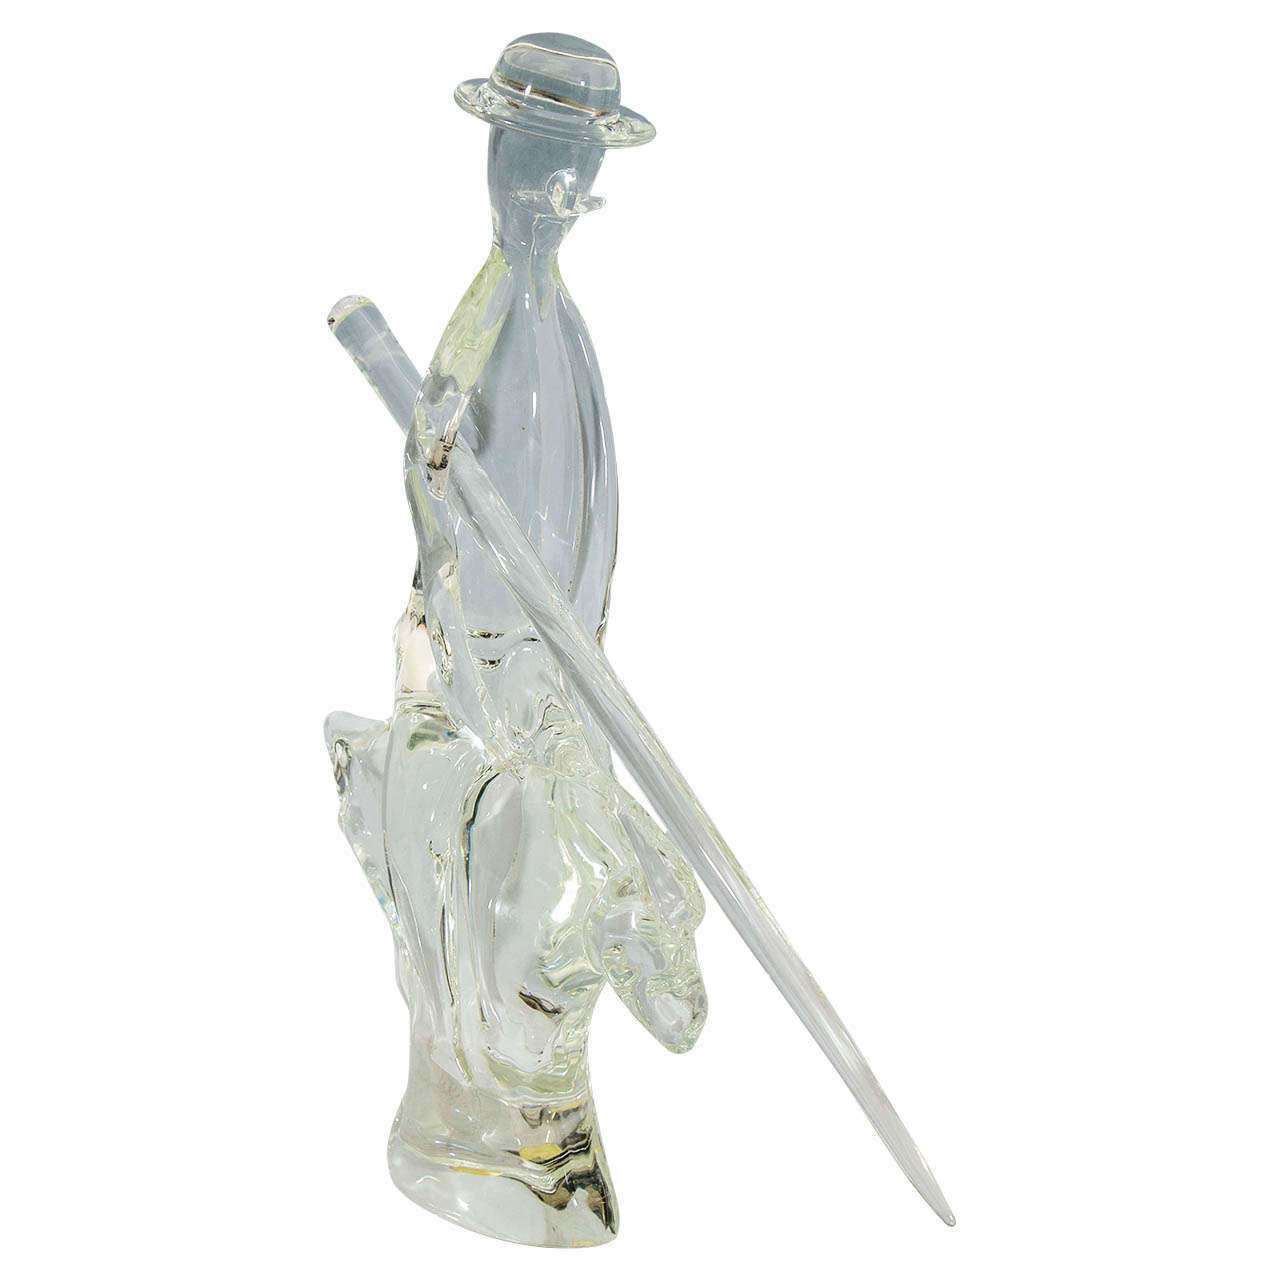 Mid Century Murano Glass Sculpture of Man on Horse Holding a Sword